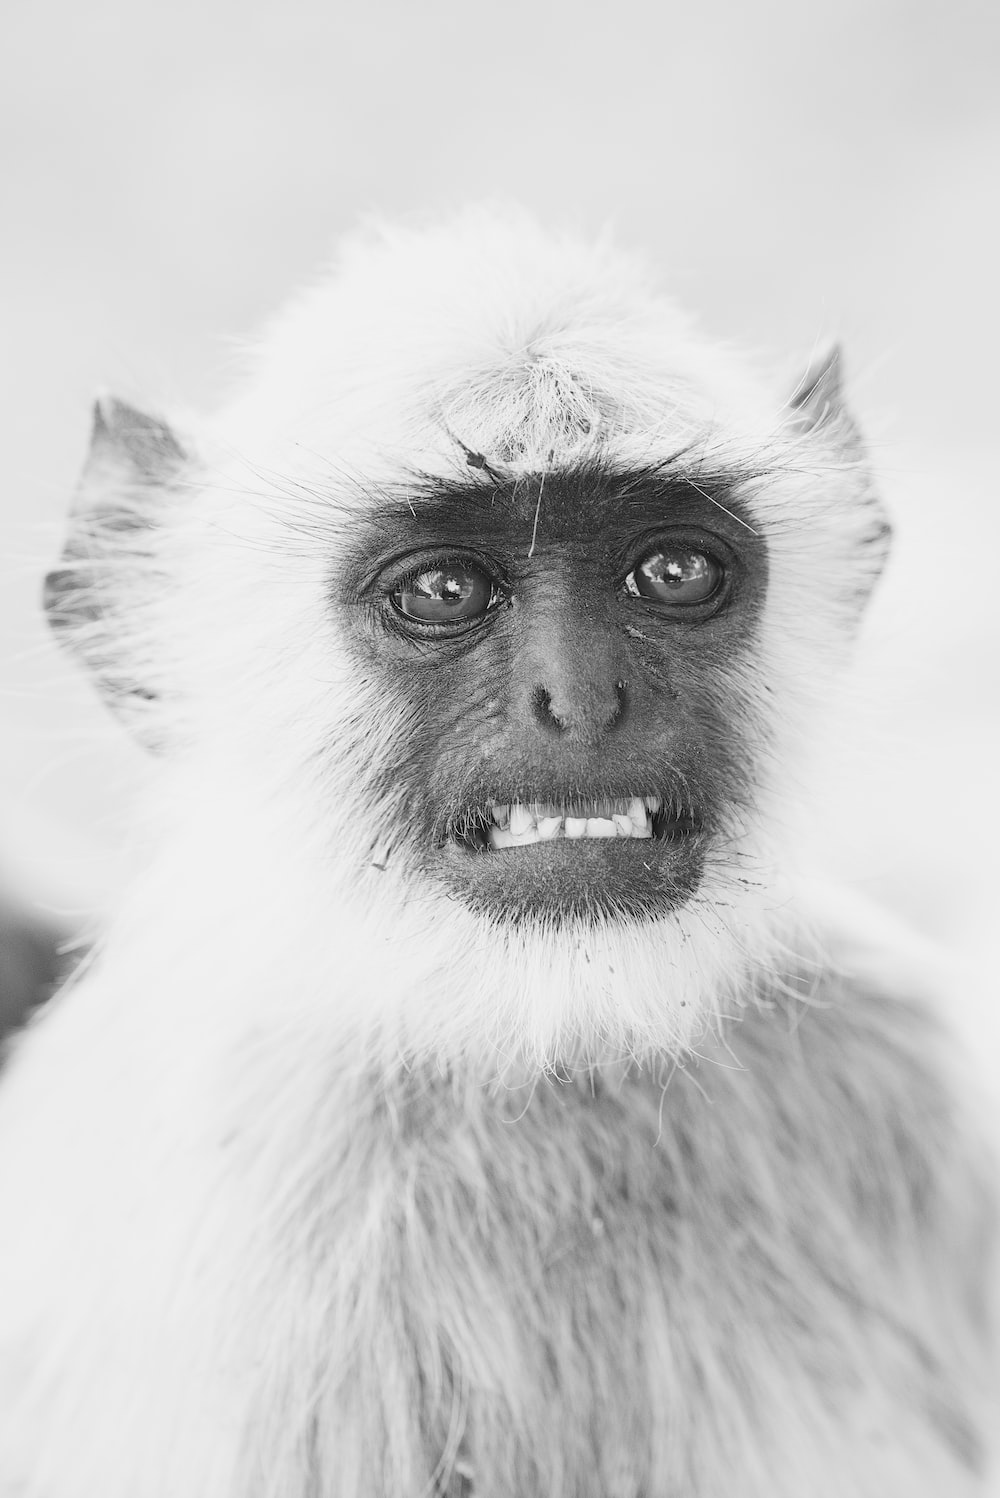 grayscale photo of primate